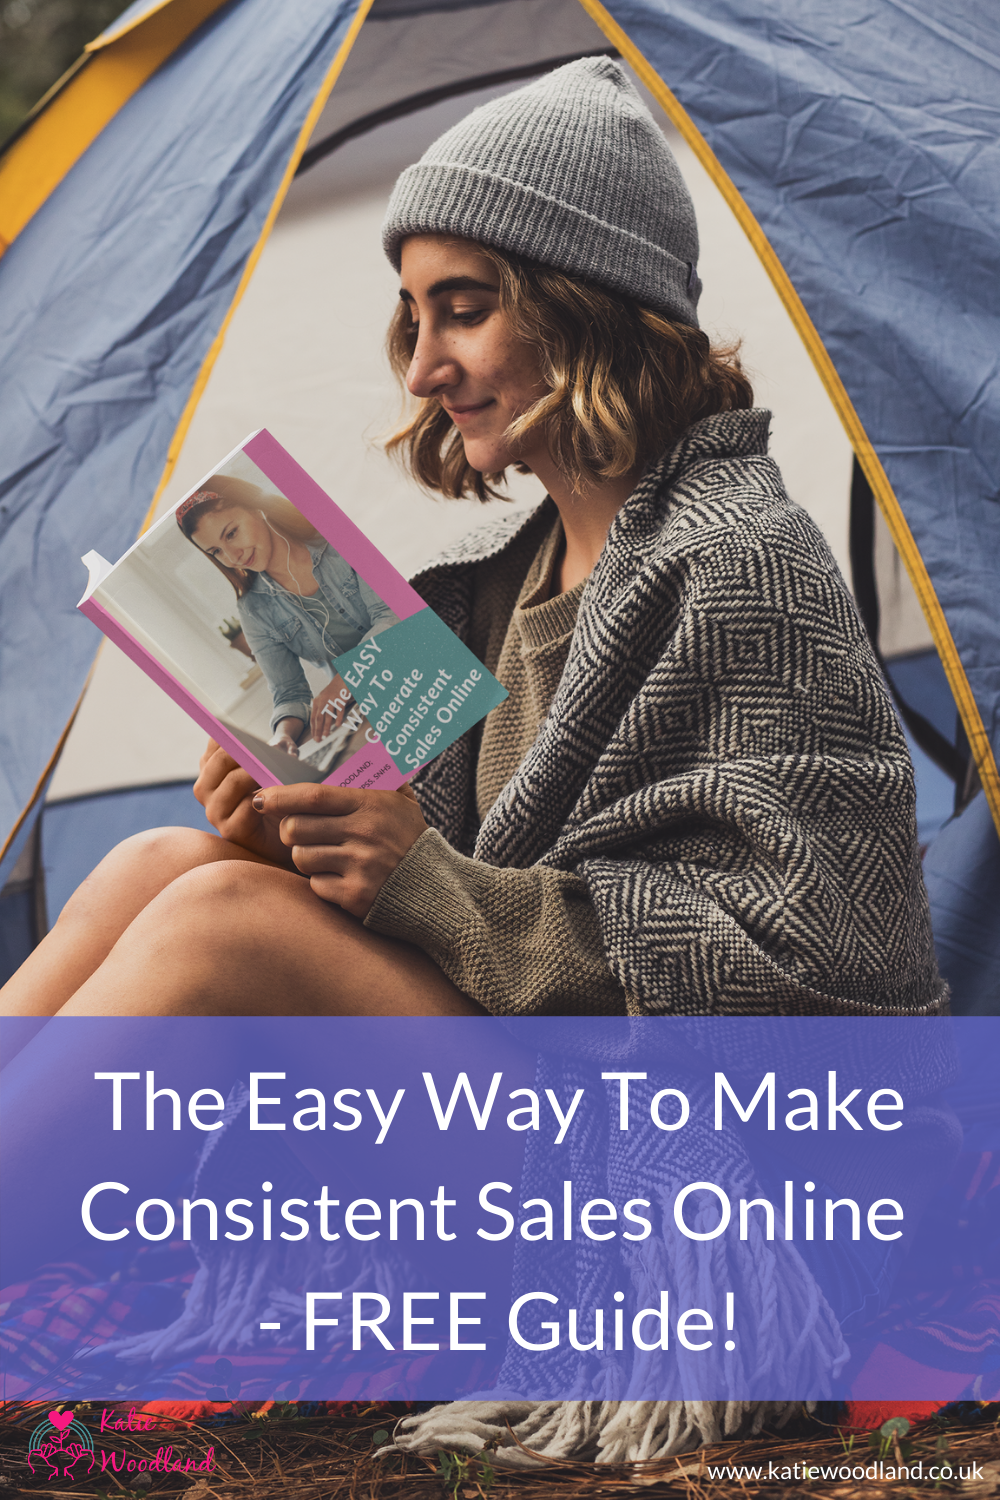 The Easy Way To Make Consistent Sales Free Guide For Female Entrepreneurs